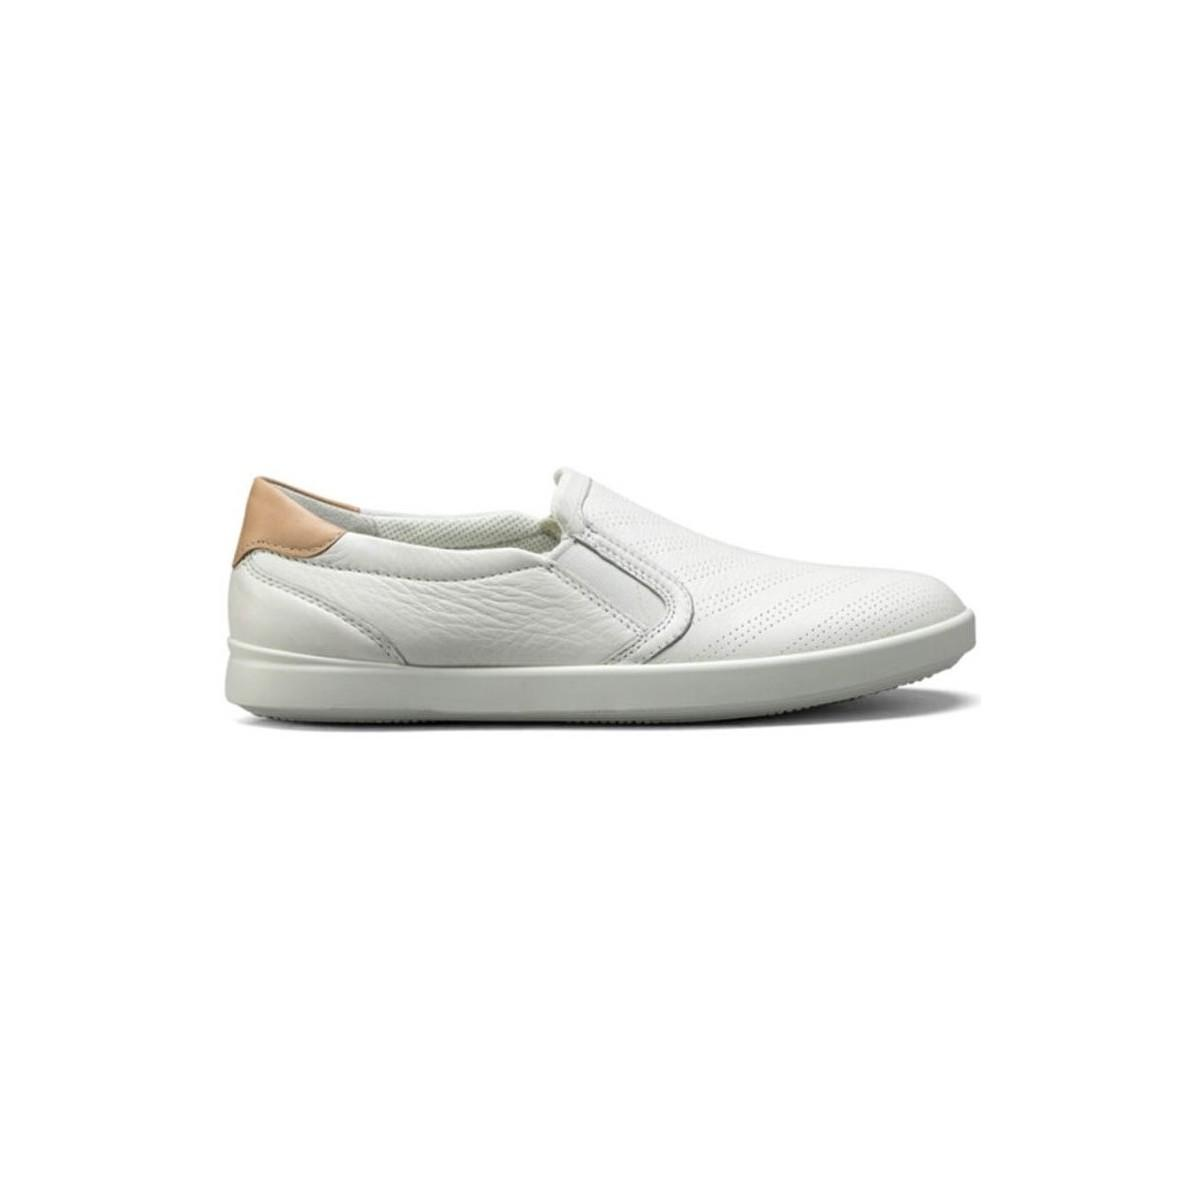 97919796 Ecco Leisure Women's Slip-ons (shoes) In White in White - Lyst